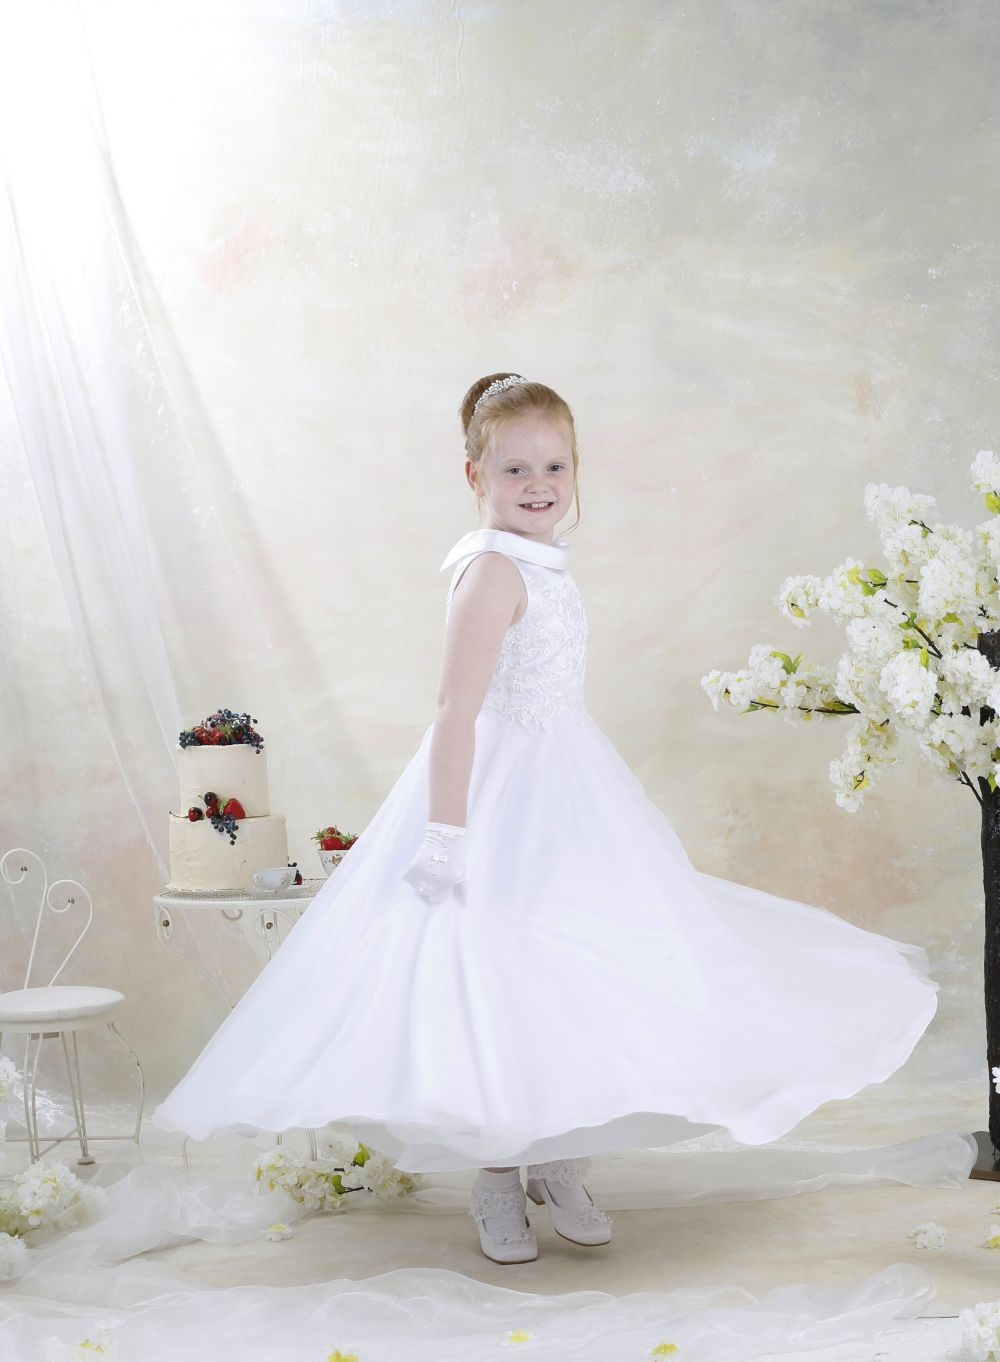 Celebrations Communion Dress - Red Rose